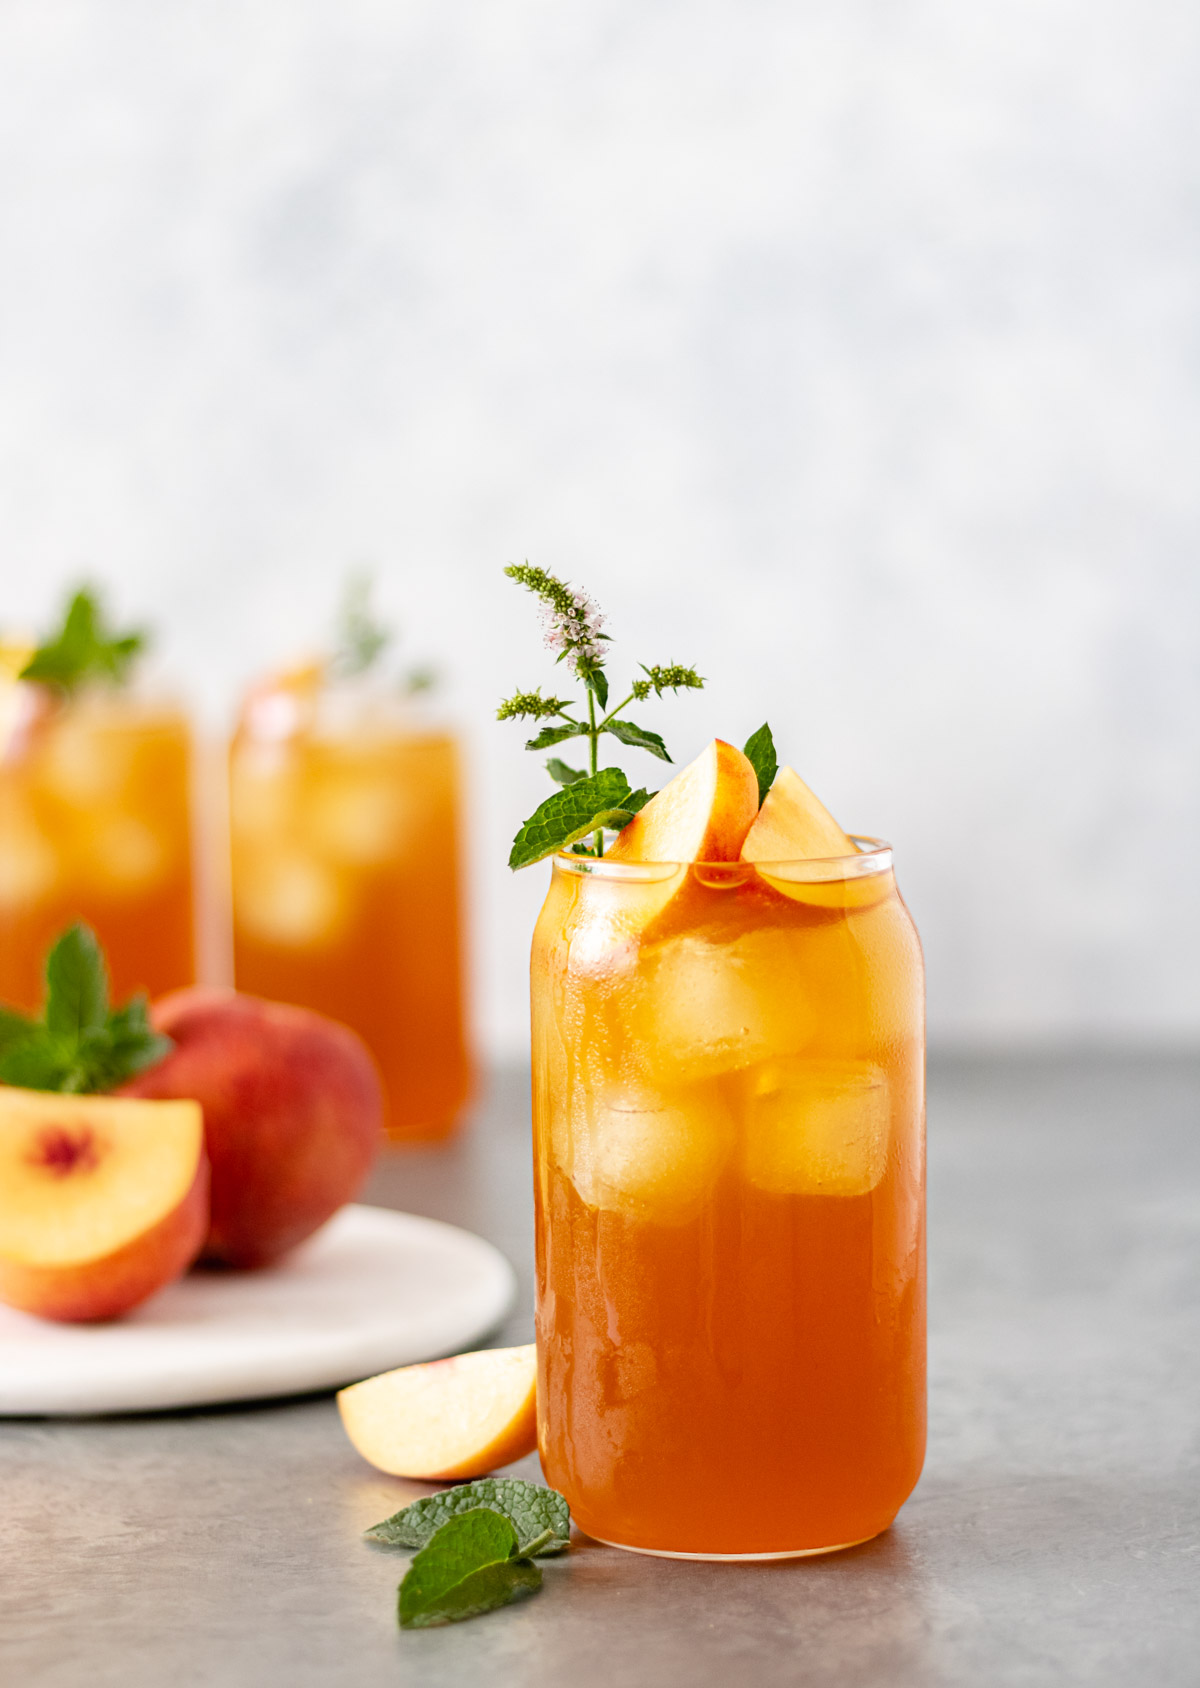 A glass filled with peach lavender iced tea, fresh peach slices and mint.